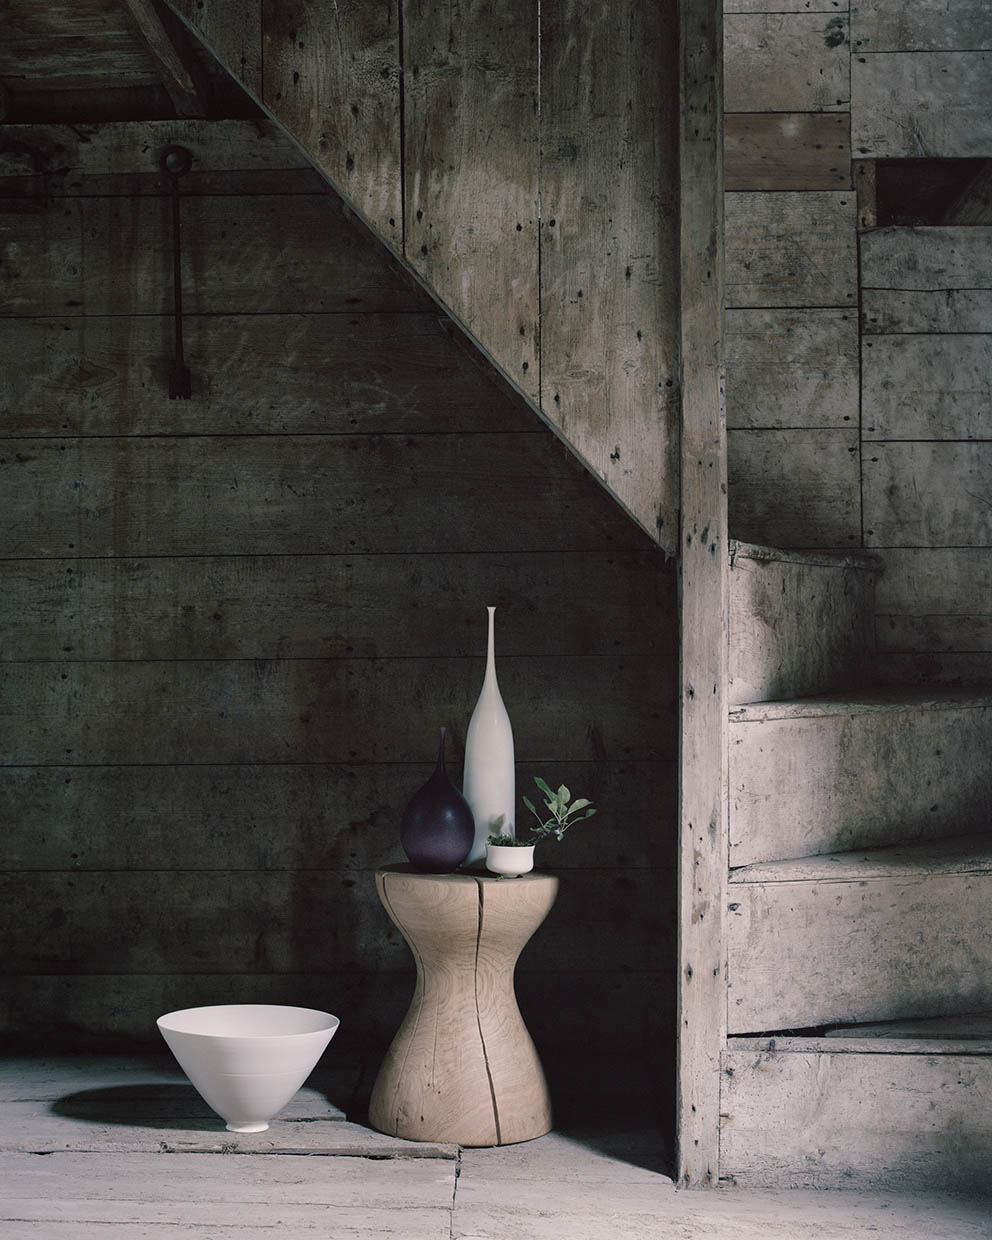 Sania Pell interior stylist for Maud & Mable craft gallery, photographer Rory Gardiner